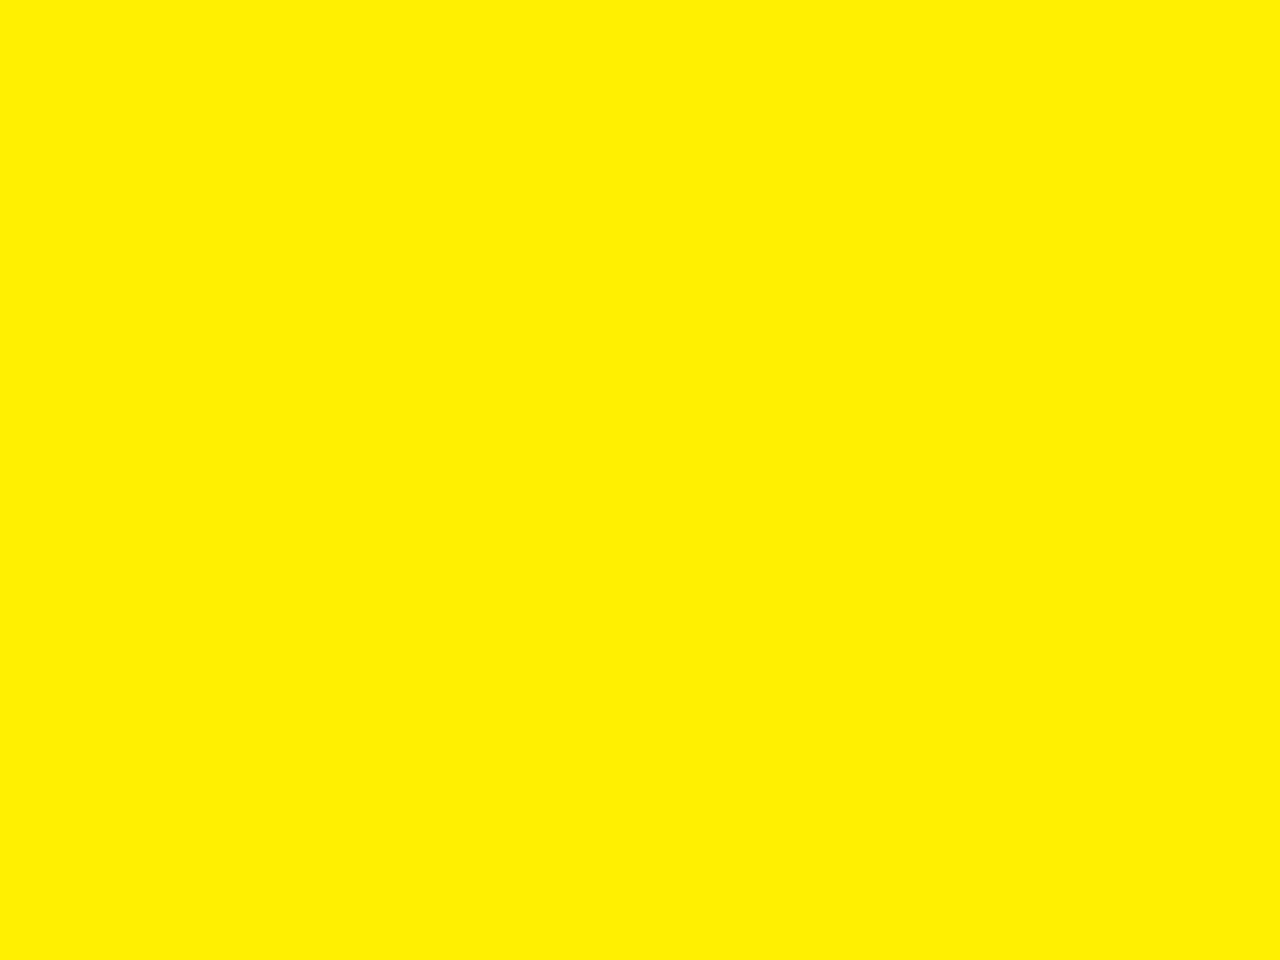 1280x960 Canary Yellow Solid Color Background